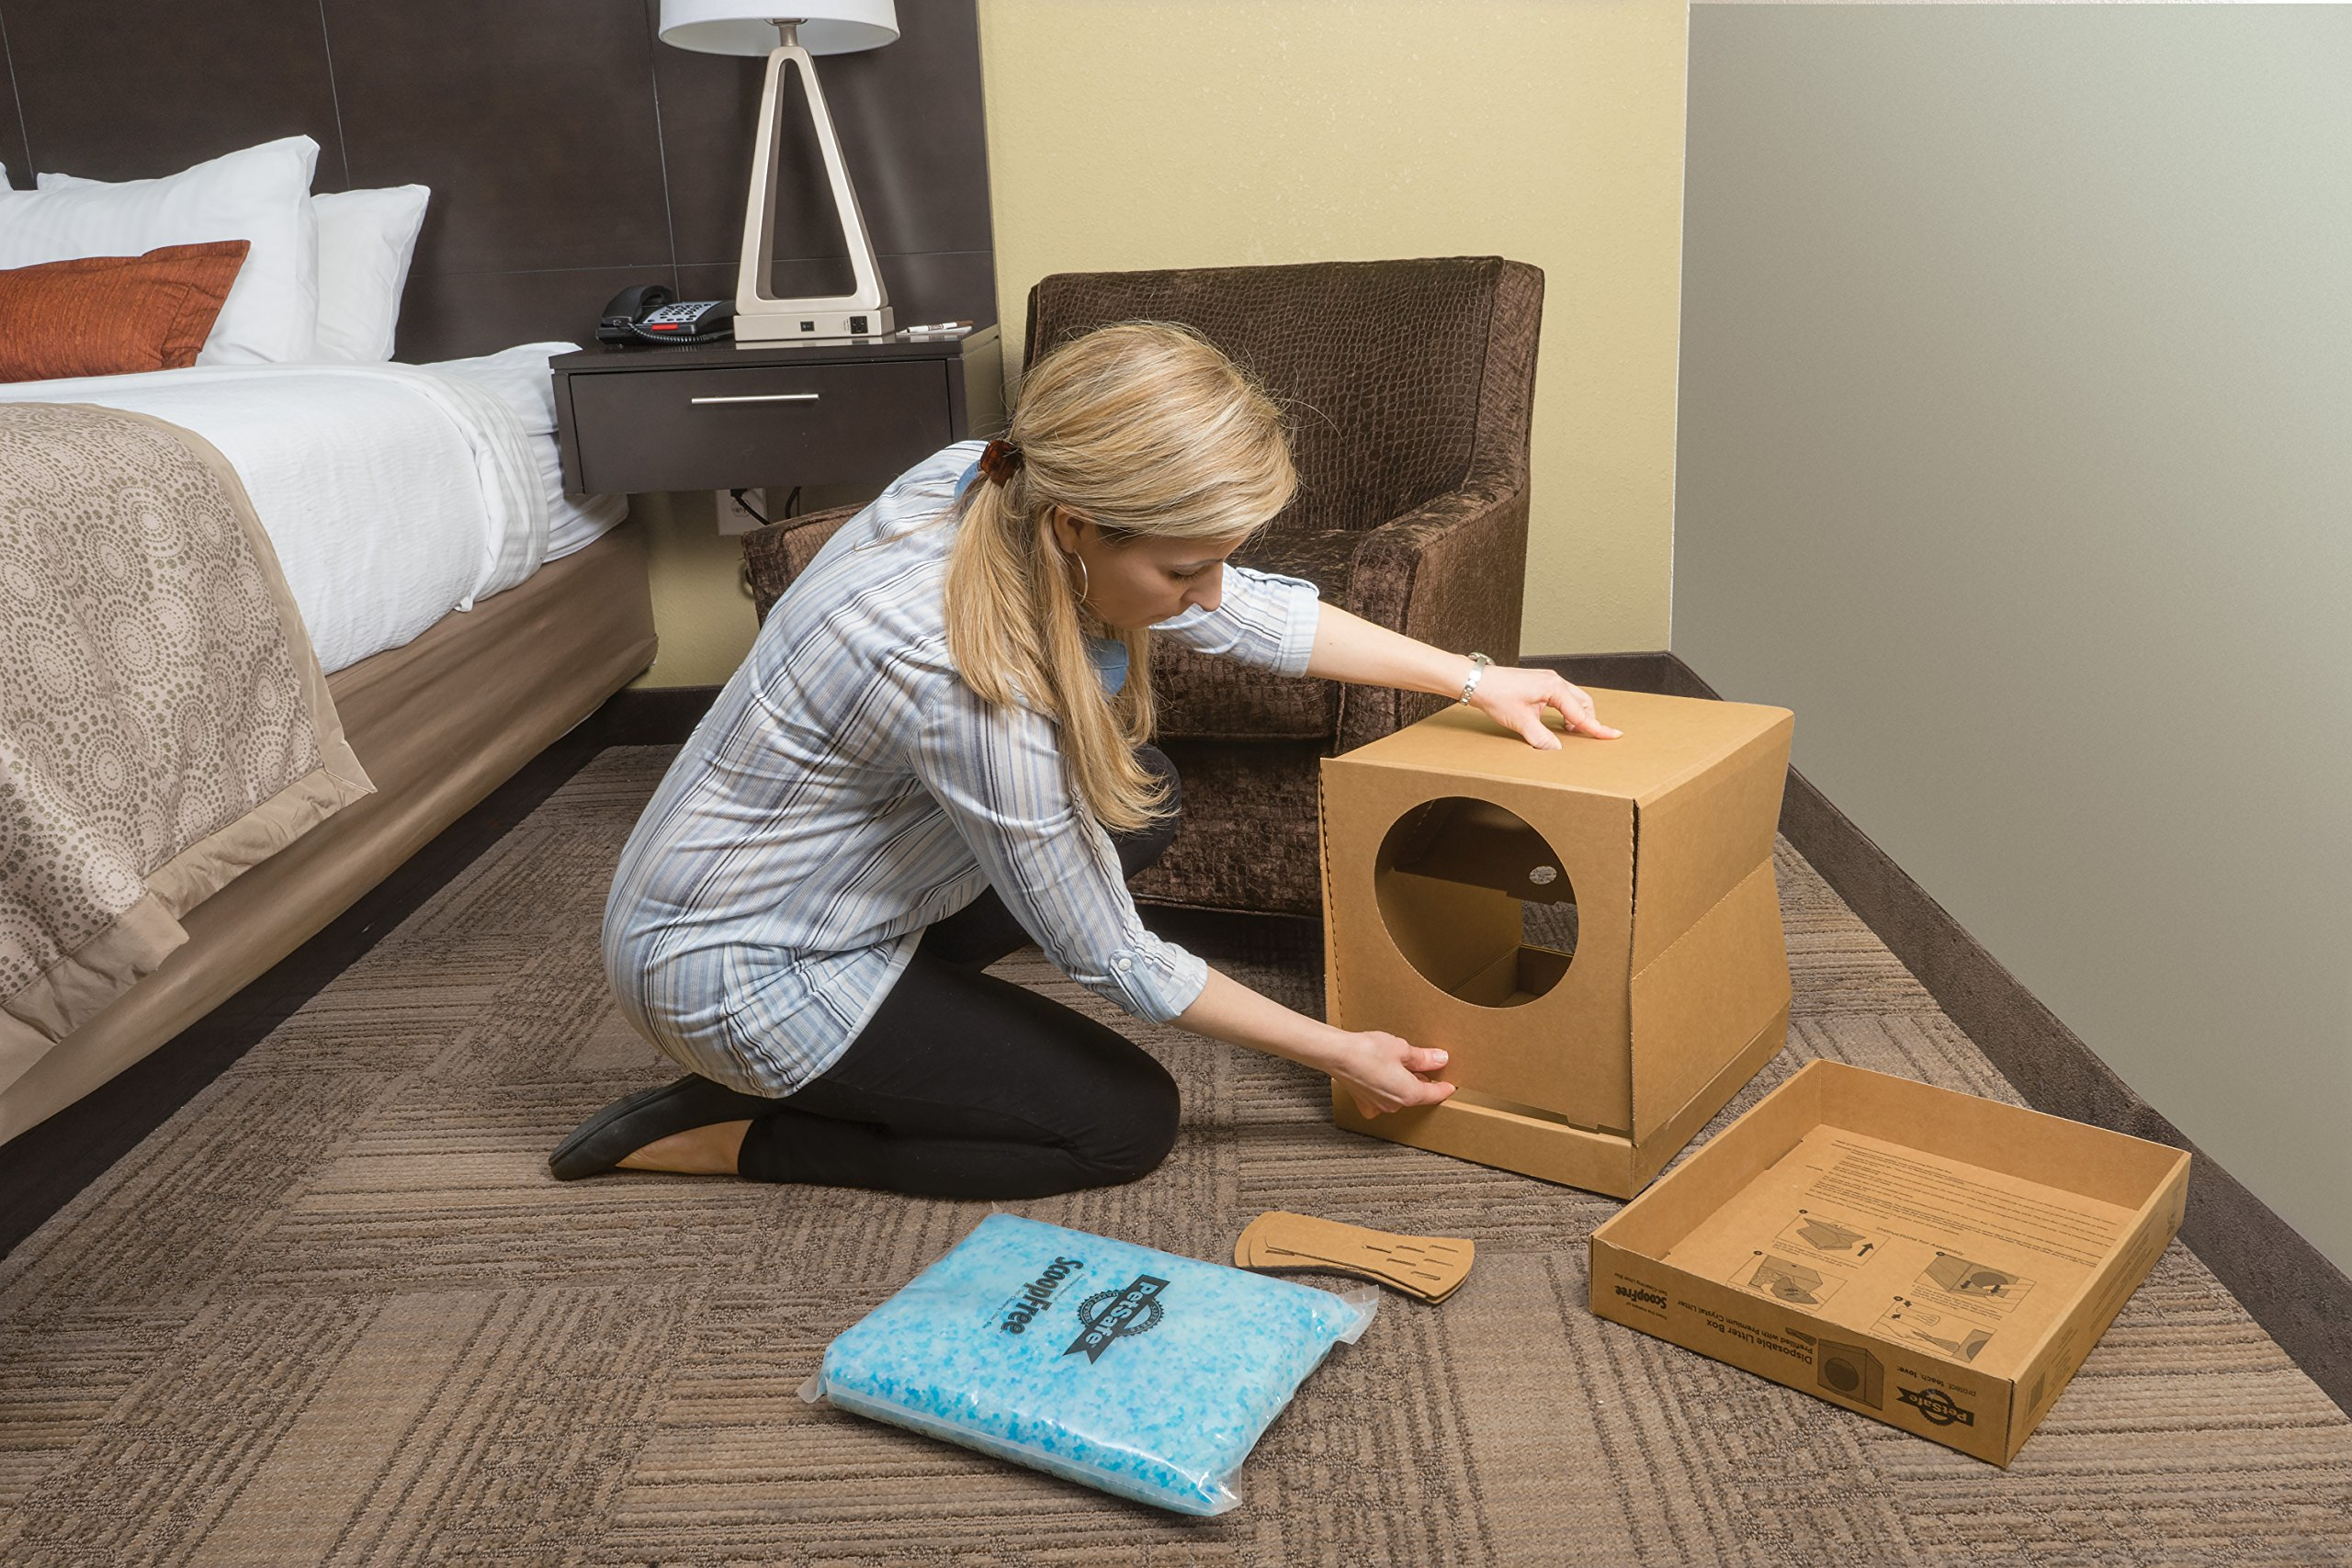 PetSafe Disposable Cat Litter Box, Collapsible Covered Design for Travel, from the Makers of ScoopFree Self Cleaning Litter Box 3